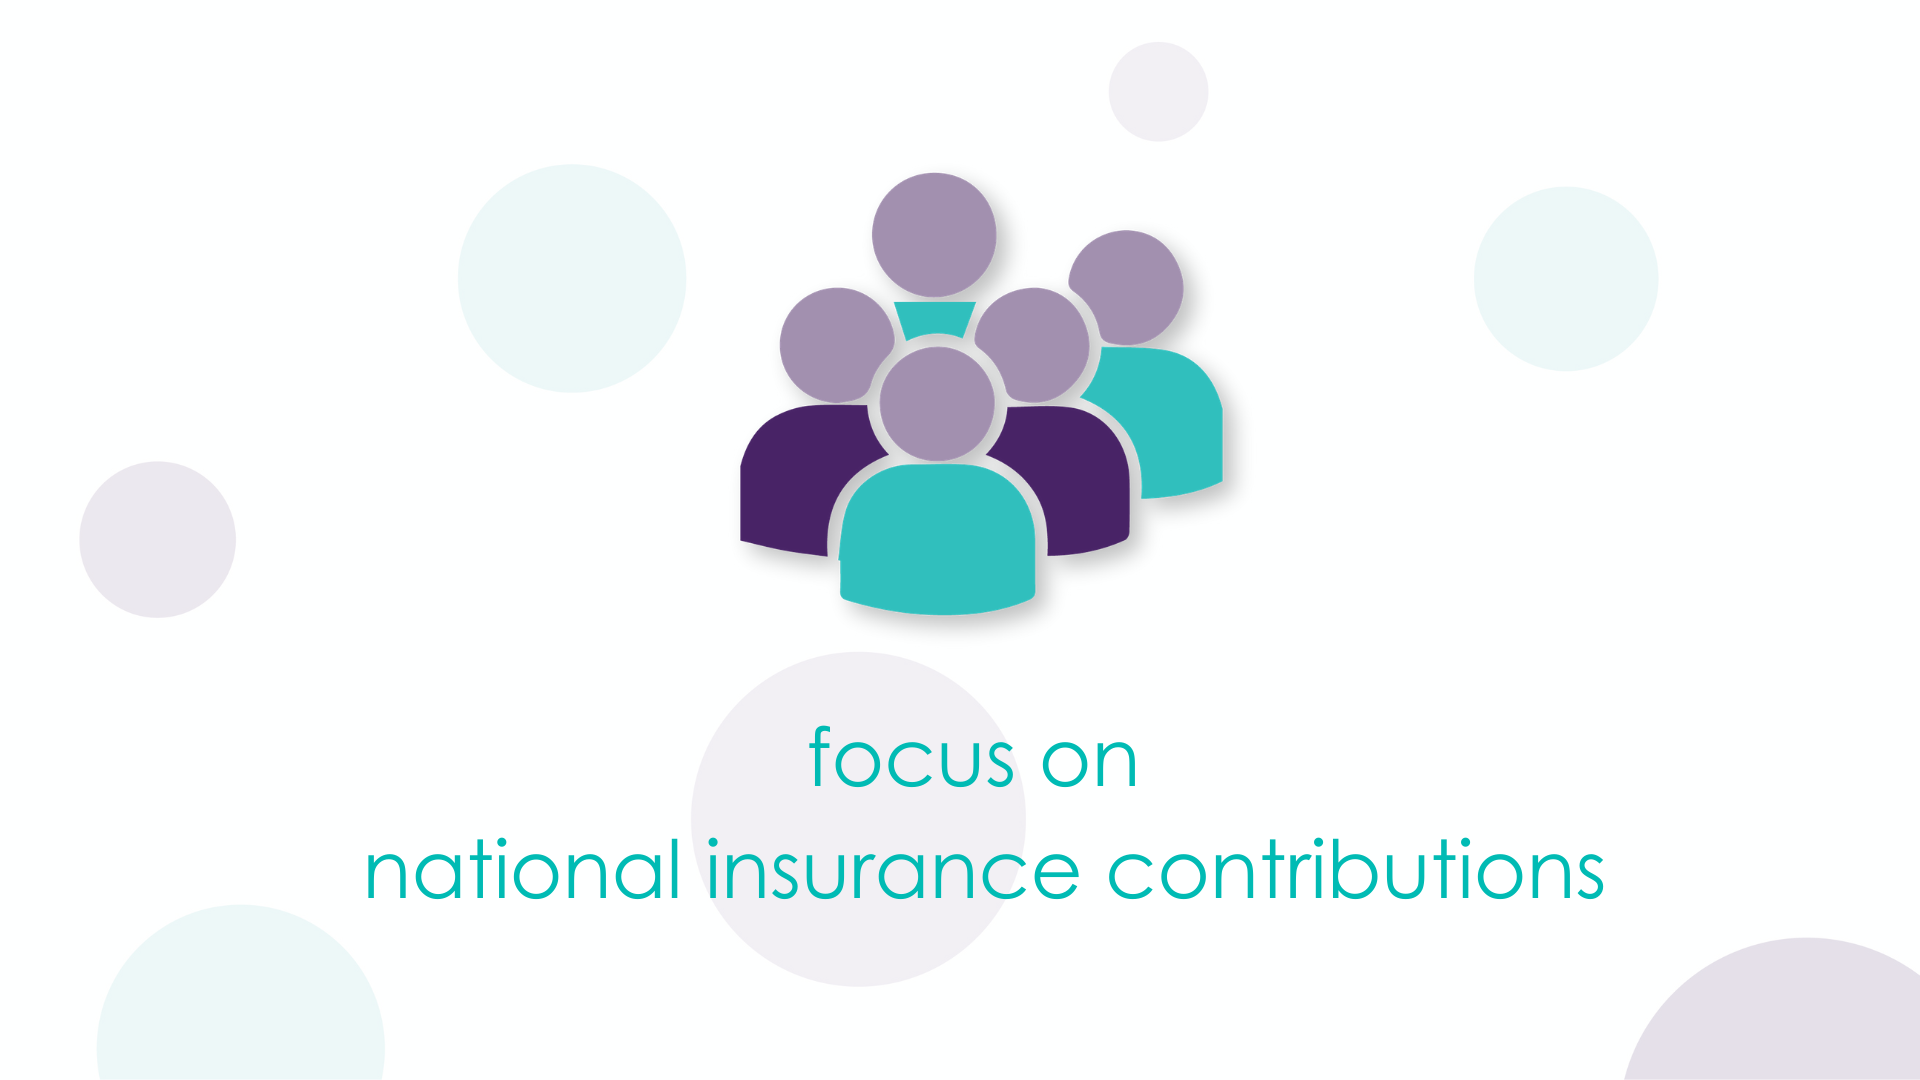 Focus on national insurance contributions